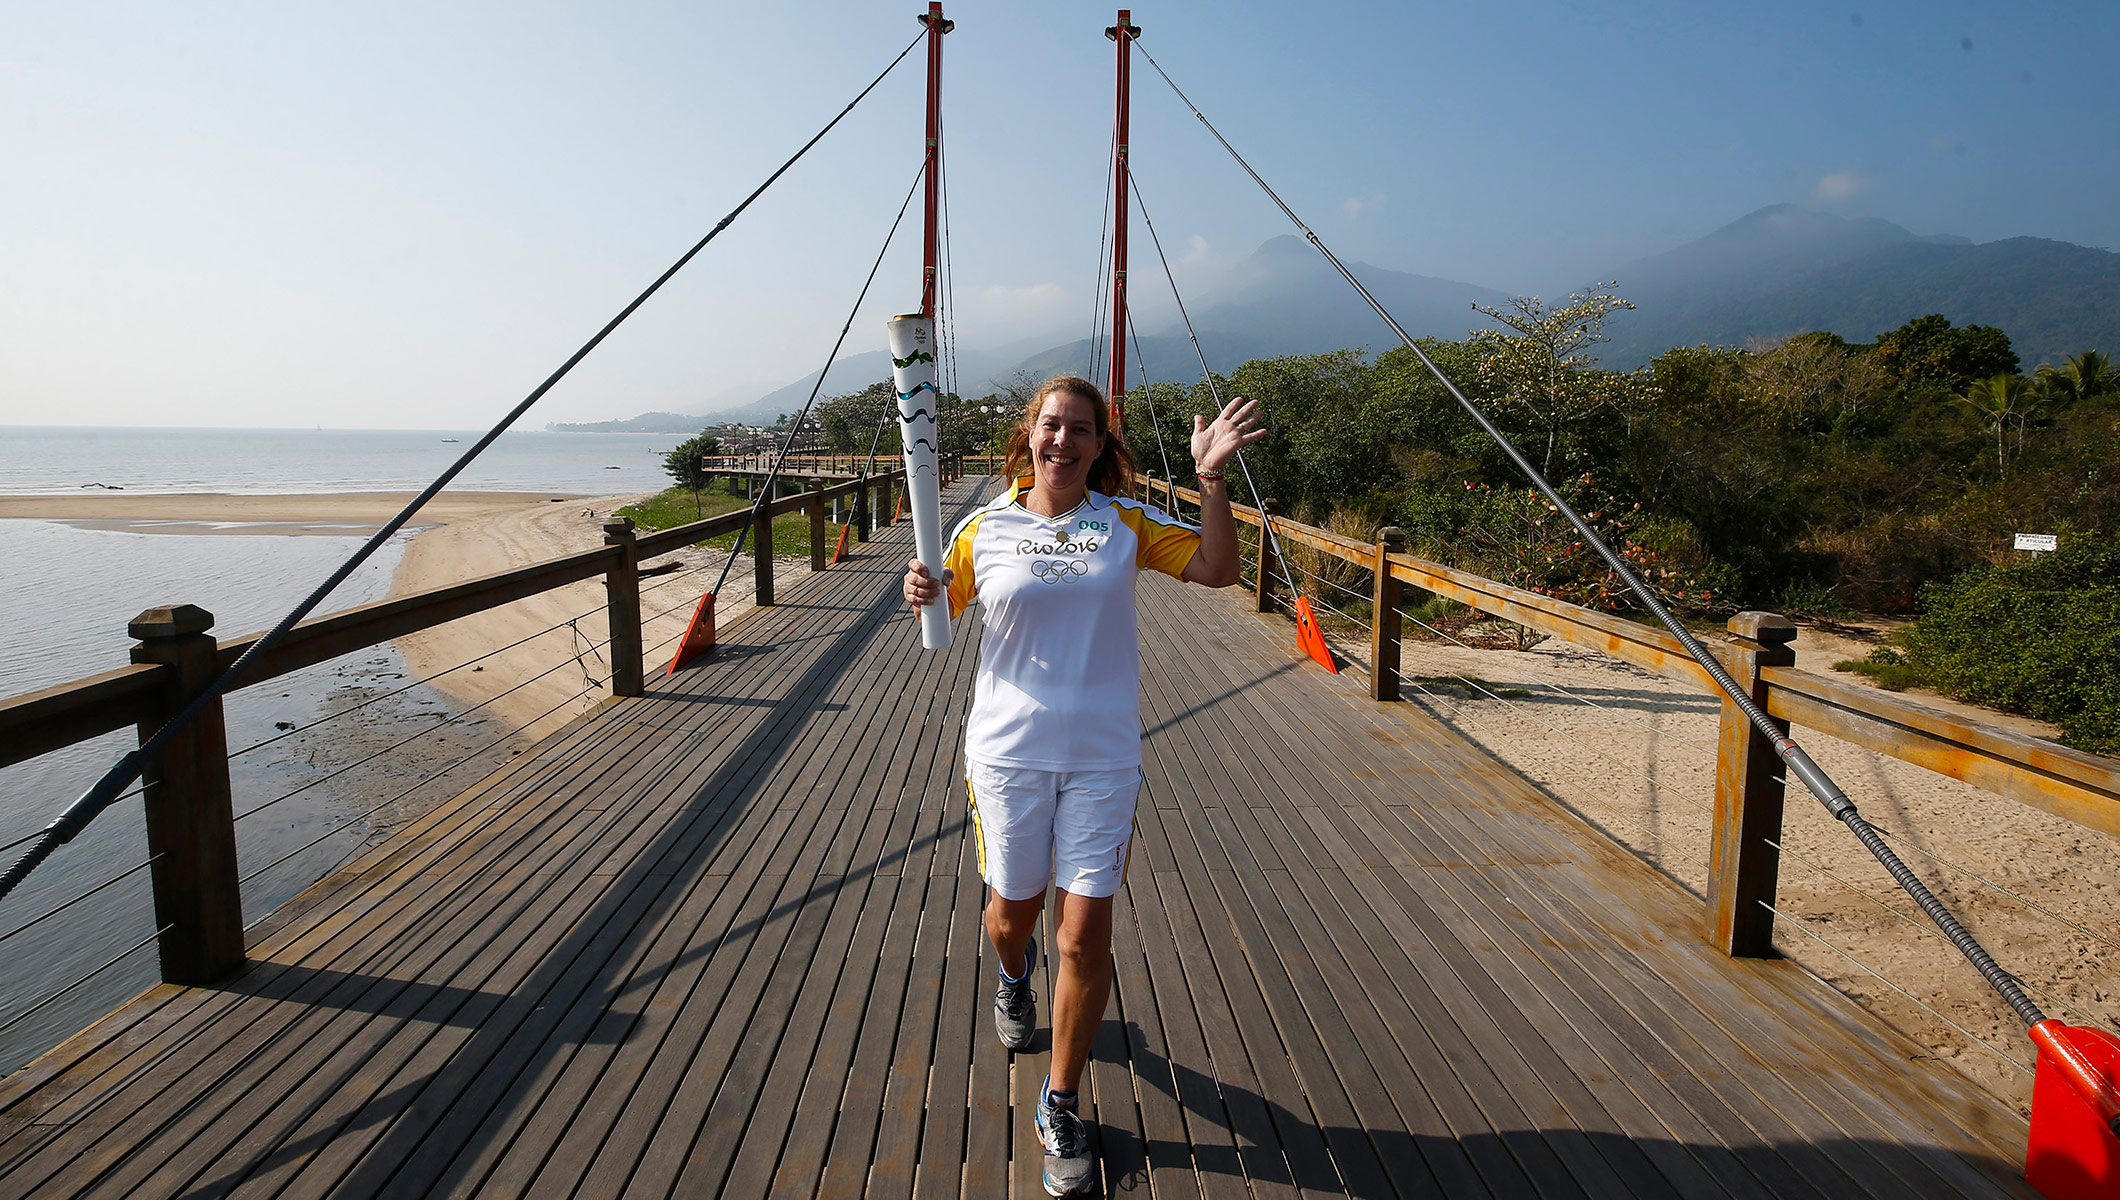 Rio 2016 Olympic Torch Relay - Day 84